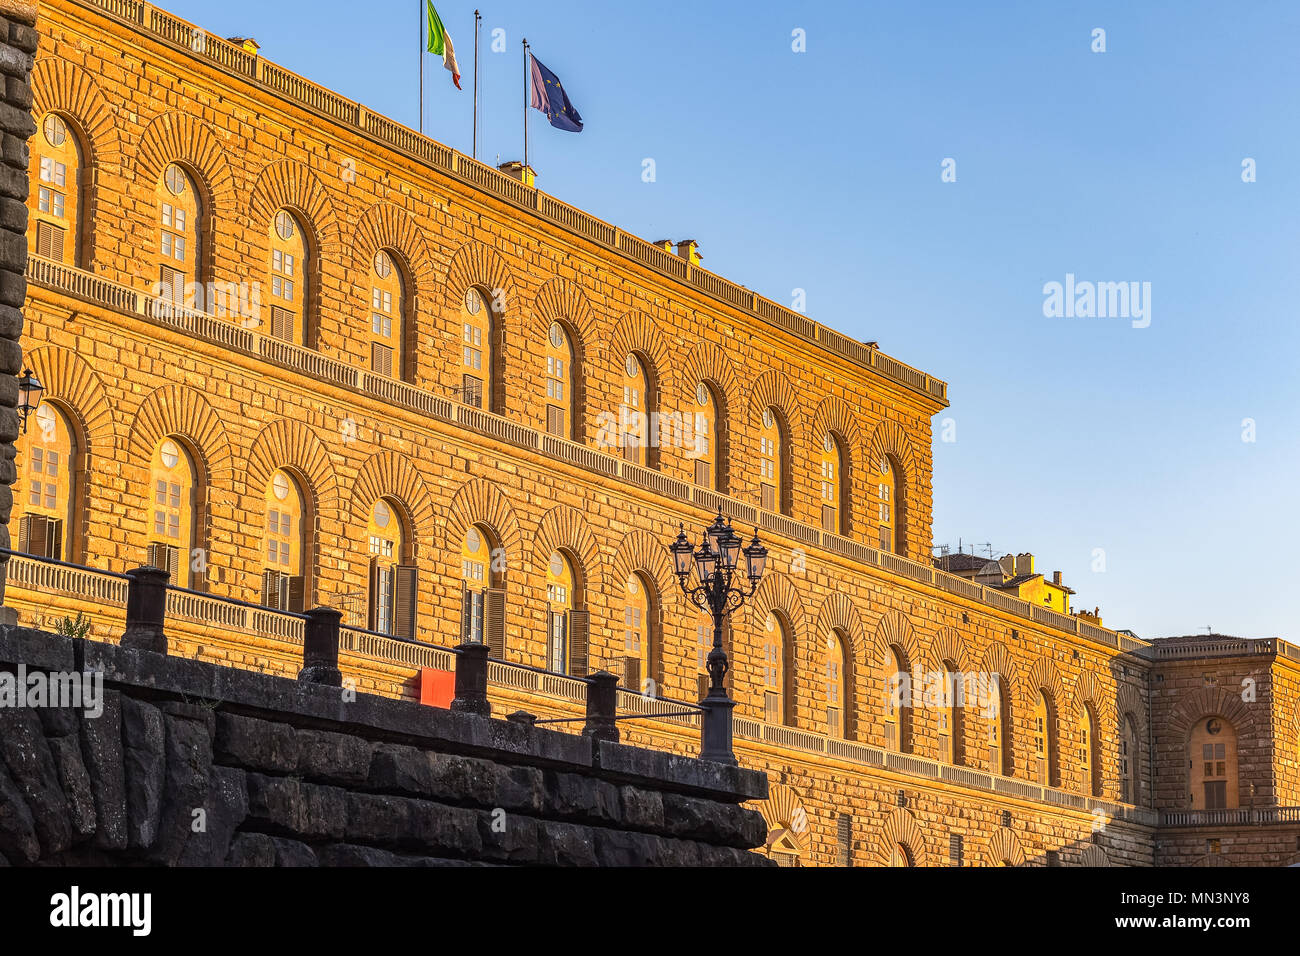 Golden sunlight hit the facade of Palazzo Pitti (Pitti Palace) in Florence, Italy at sunset - Stock Image